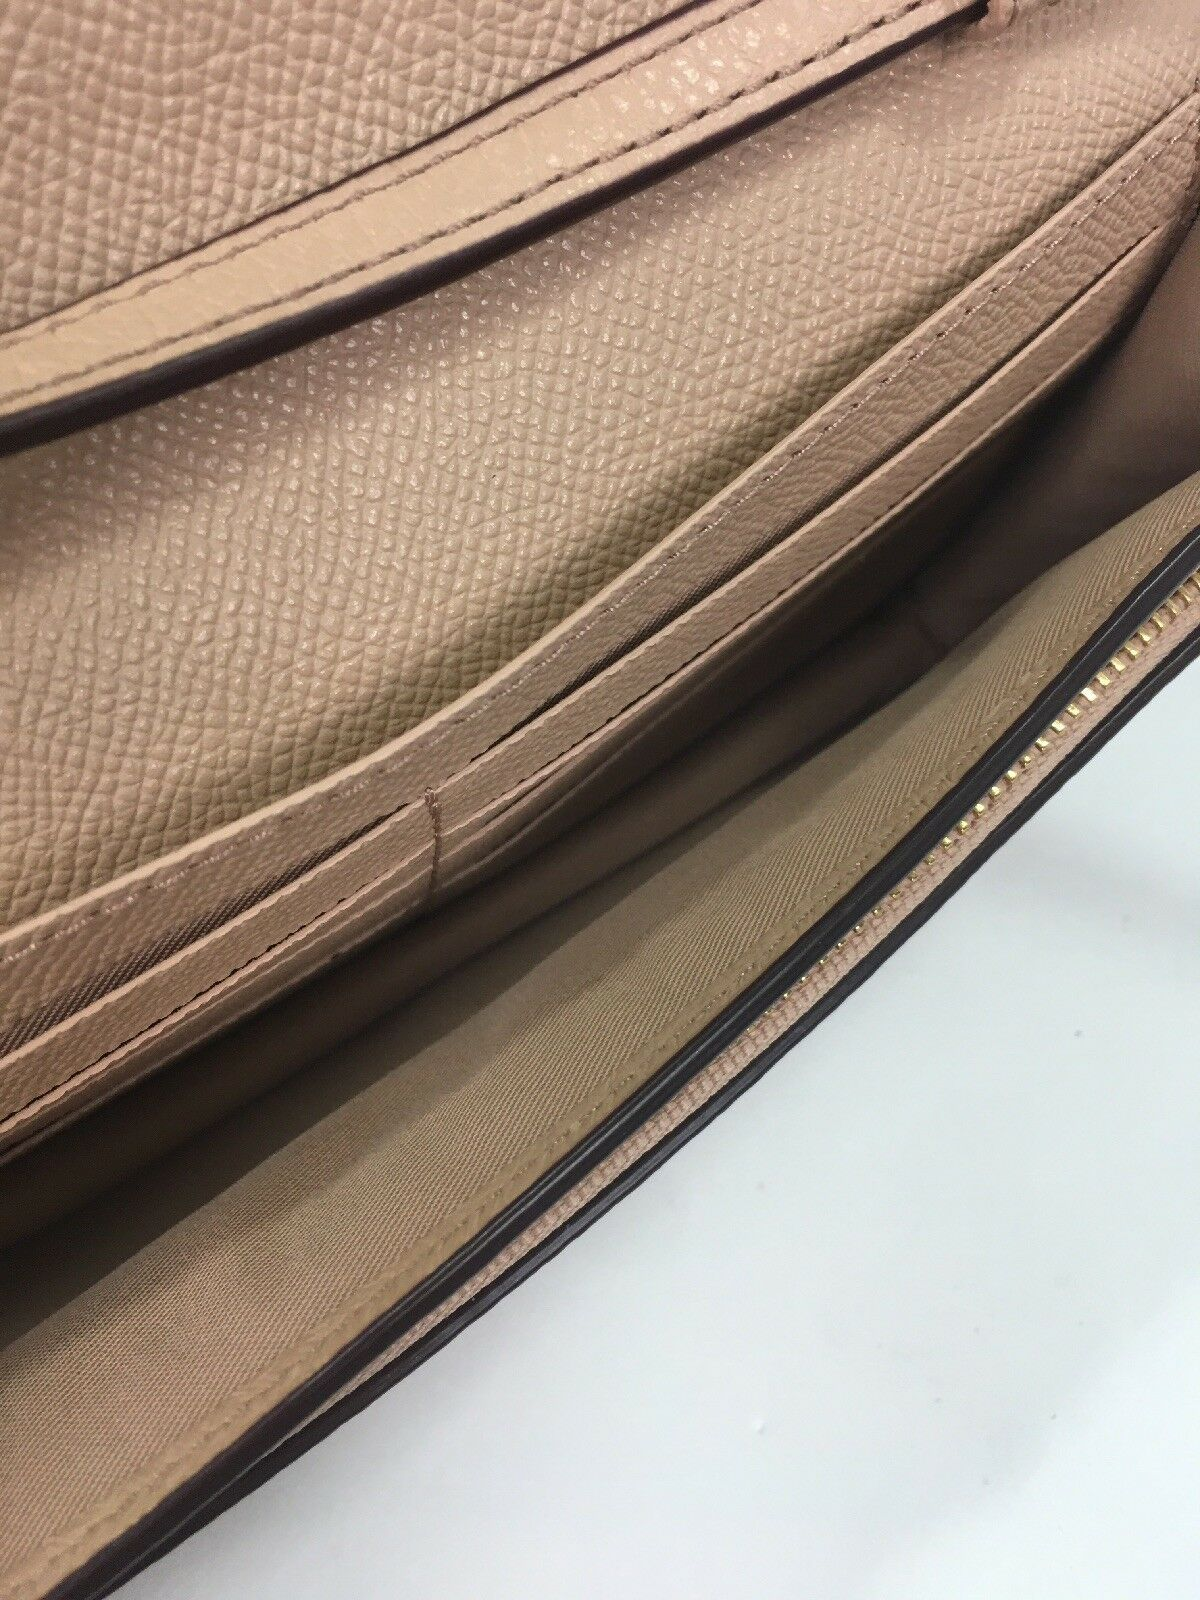 Coach Crossbody Bag Pebbled Leather Fold over Clutch F54002 Nude Pink B12